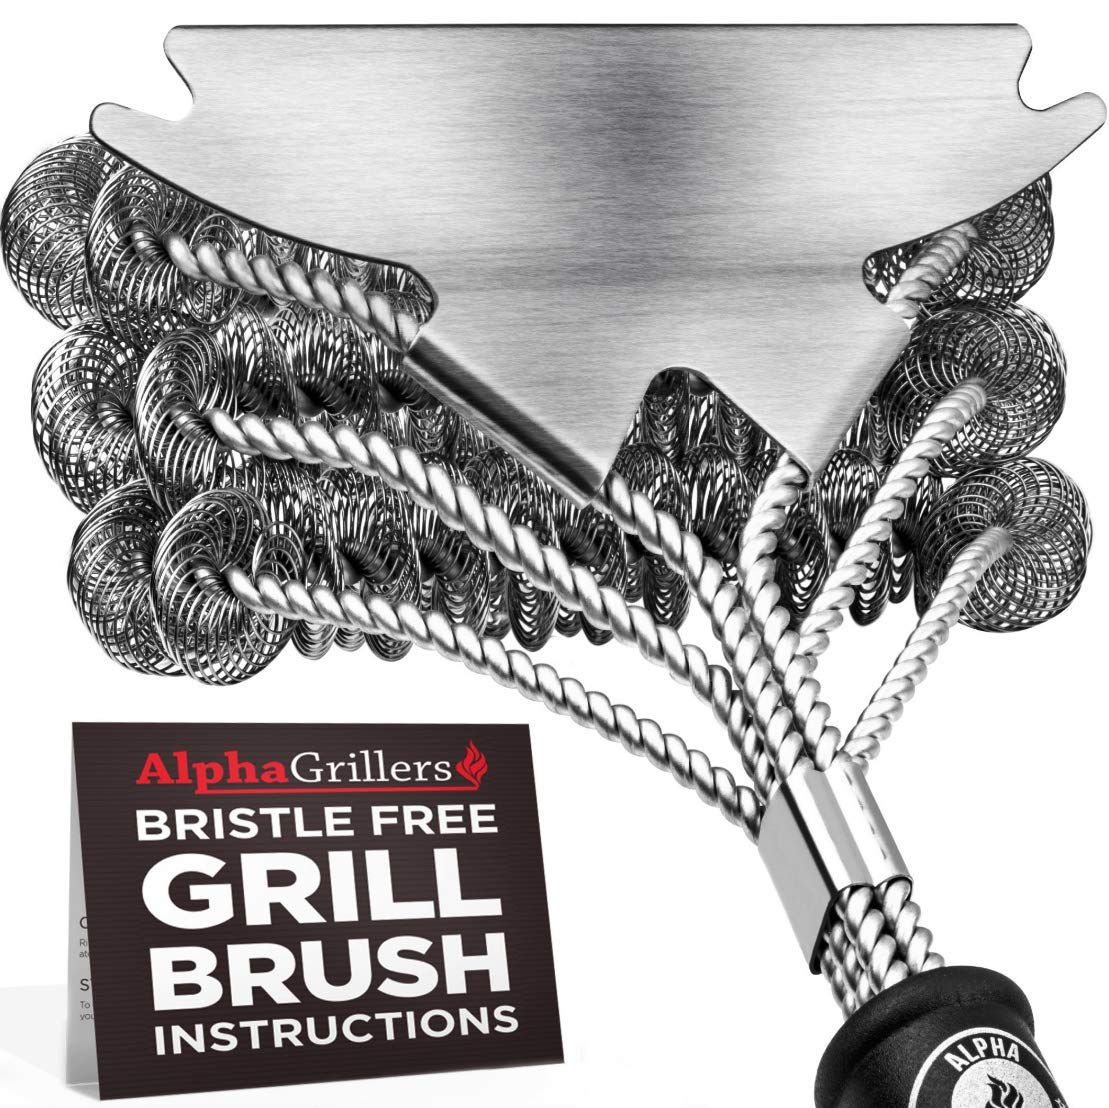 Alpha Grillers Grill Brush Bristle Free. Best Safe BBQ Cleaner with Extra Wide Scraper. Perfect 18 Inch Stainless Steel Tools for All Grill Types, Including Weber. Ideal Barbecue Accessories by Alpha Grillers